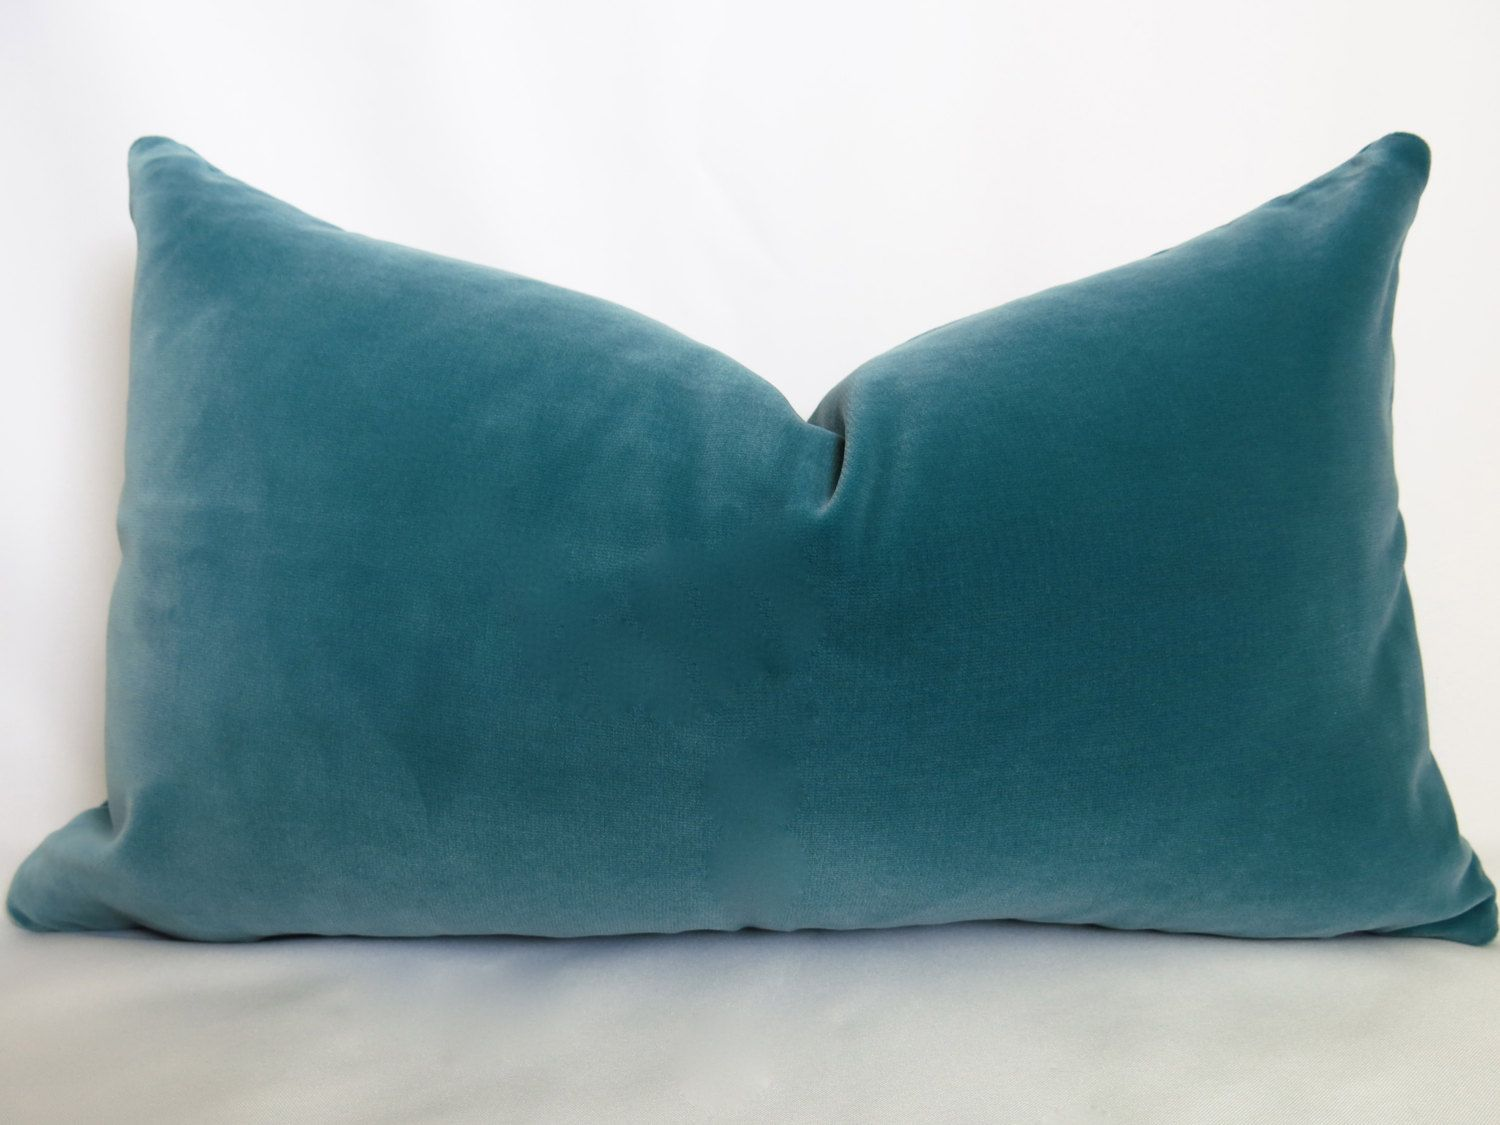 Belgium Cotton Velvet Pillow Cover Turquoise Lumbar Turquoise Pillow Turquoise Decorative Pillow Velvet Pillow Designer